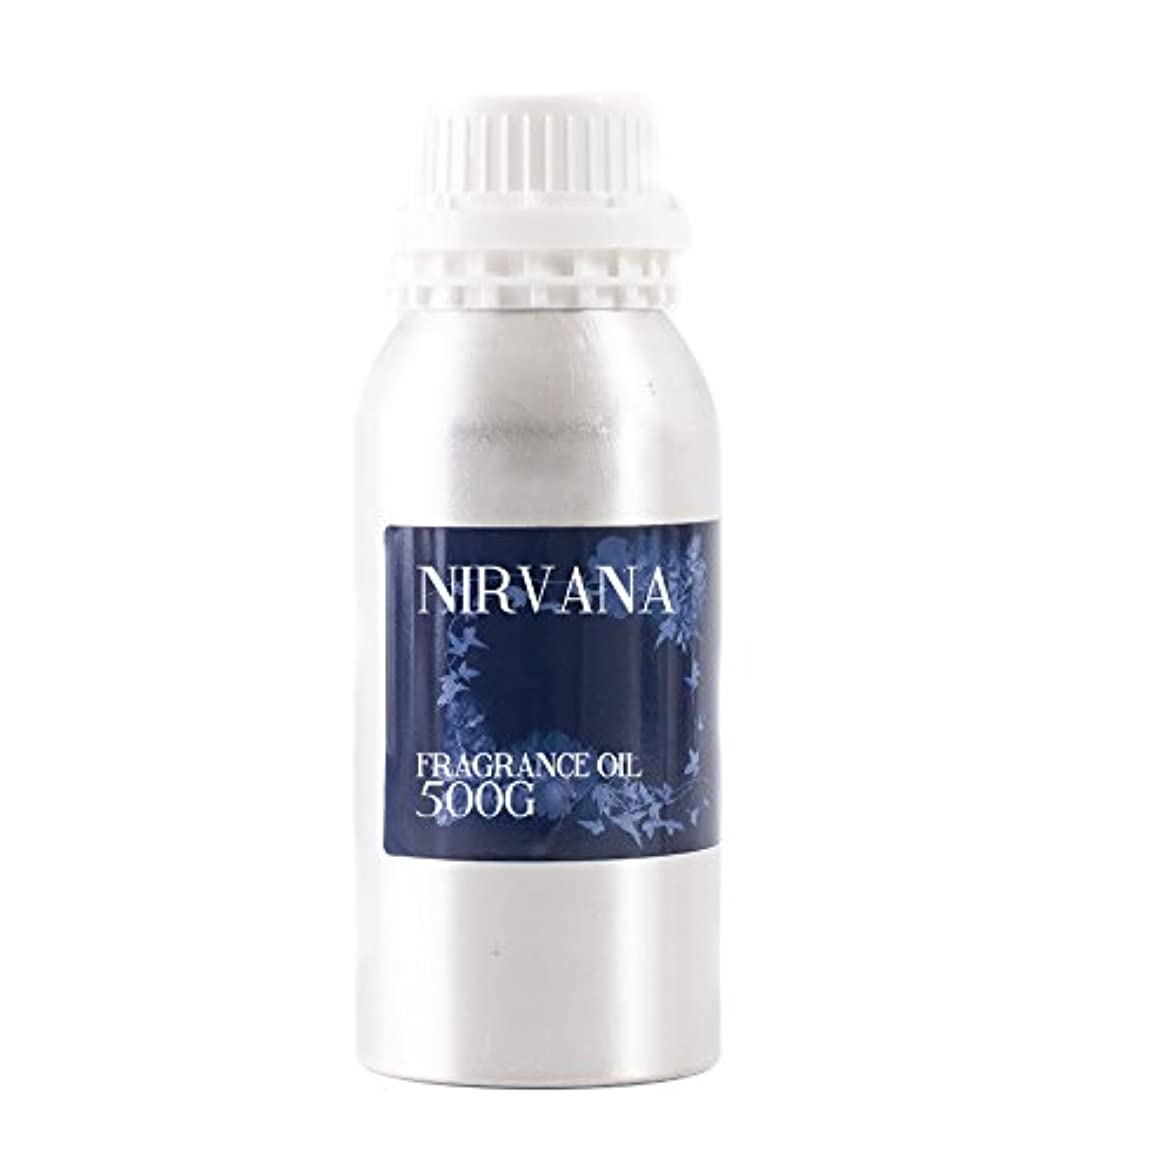 Mystic Moments | Nirvana Fragrance Oil - 500g